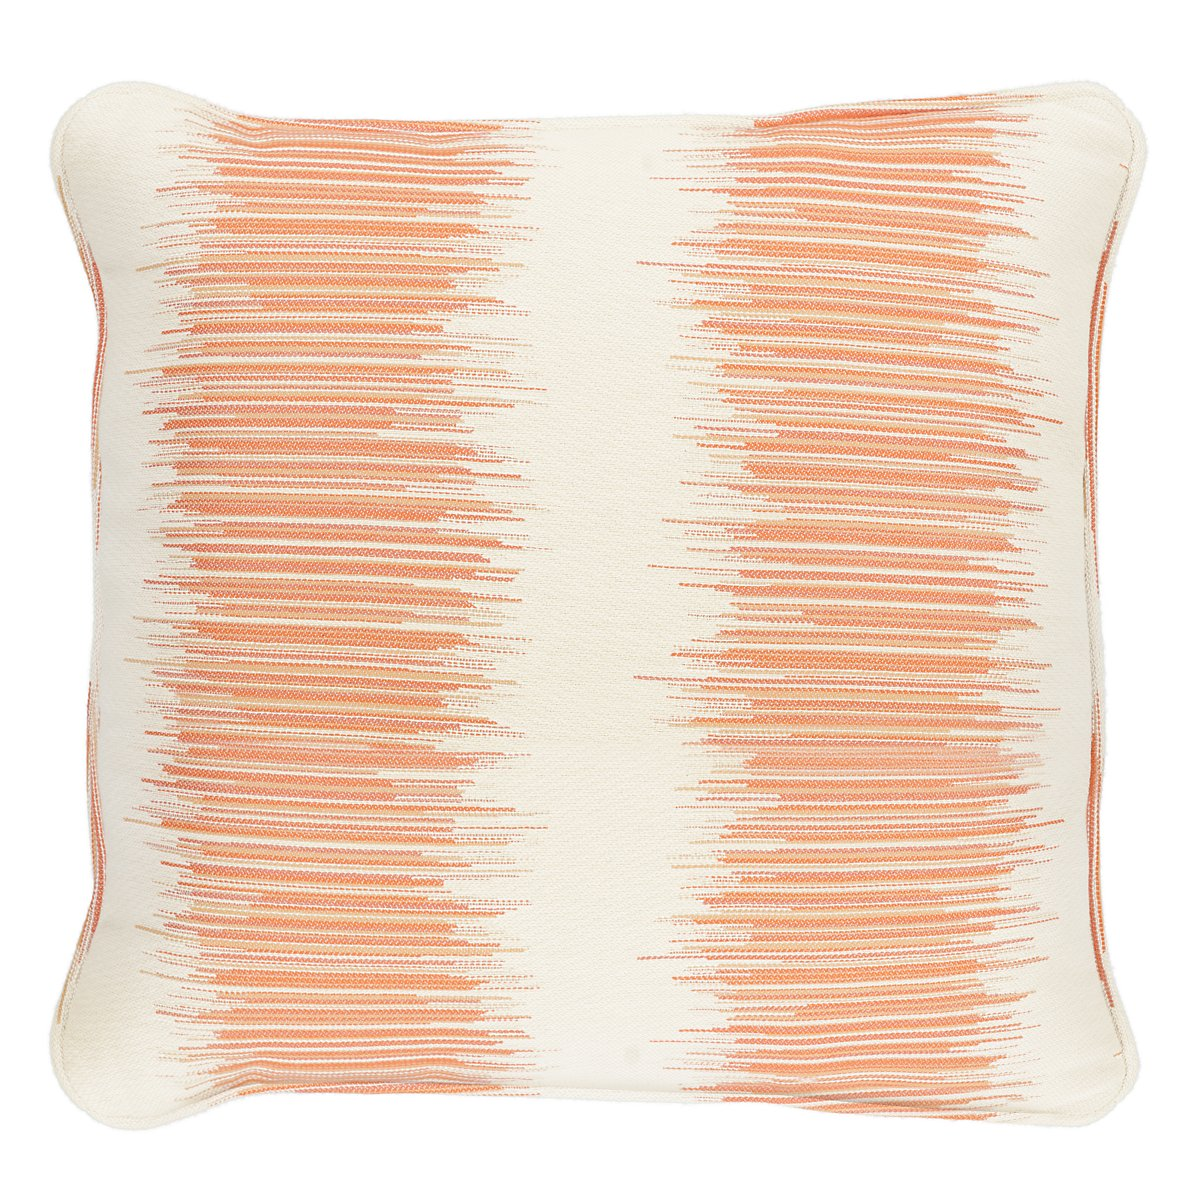 "Impromptu Orange 18"" Accent Pillow"